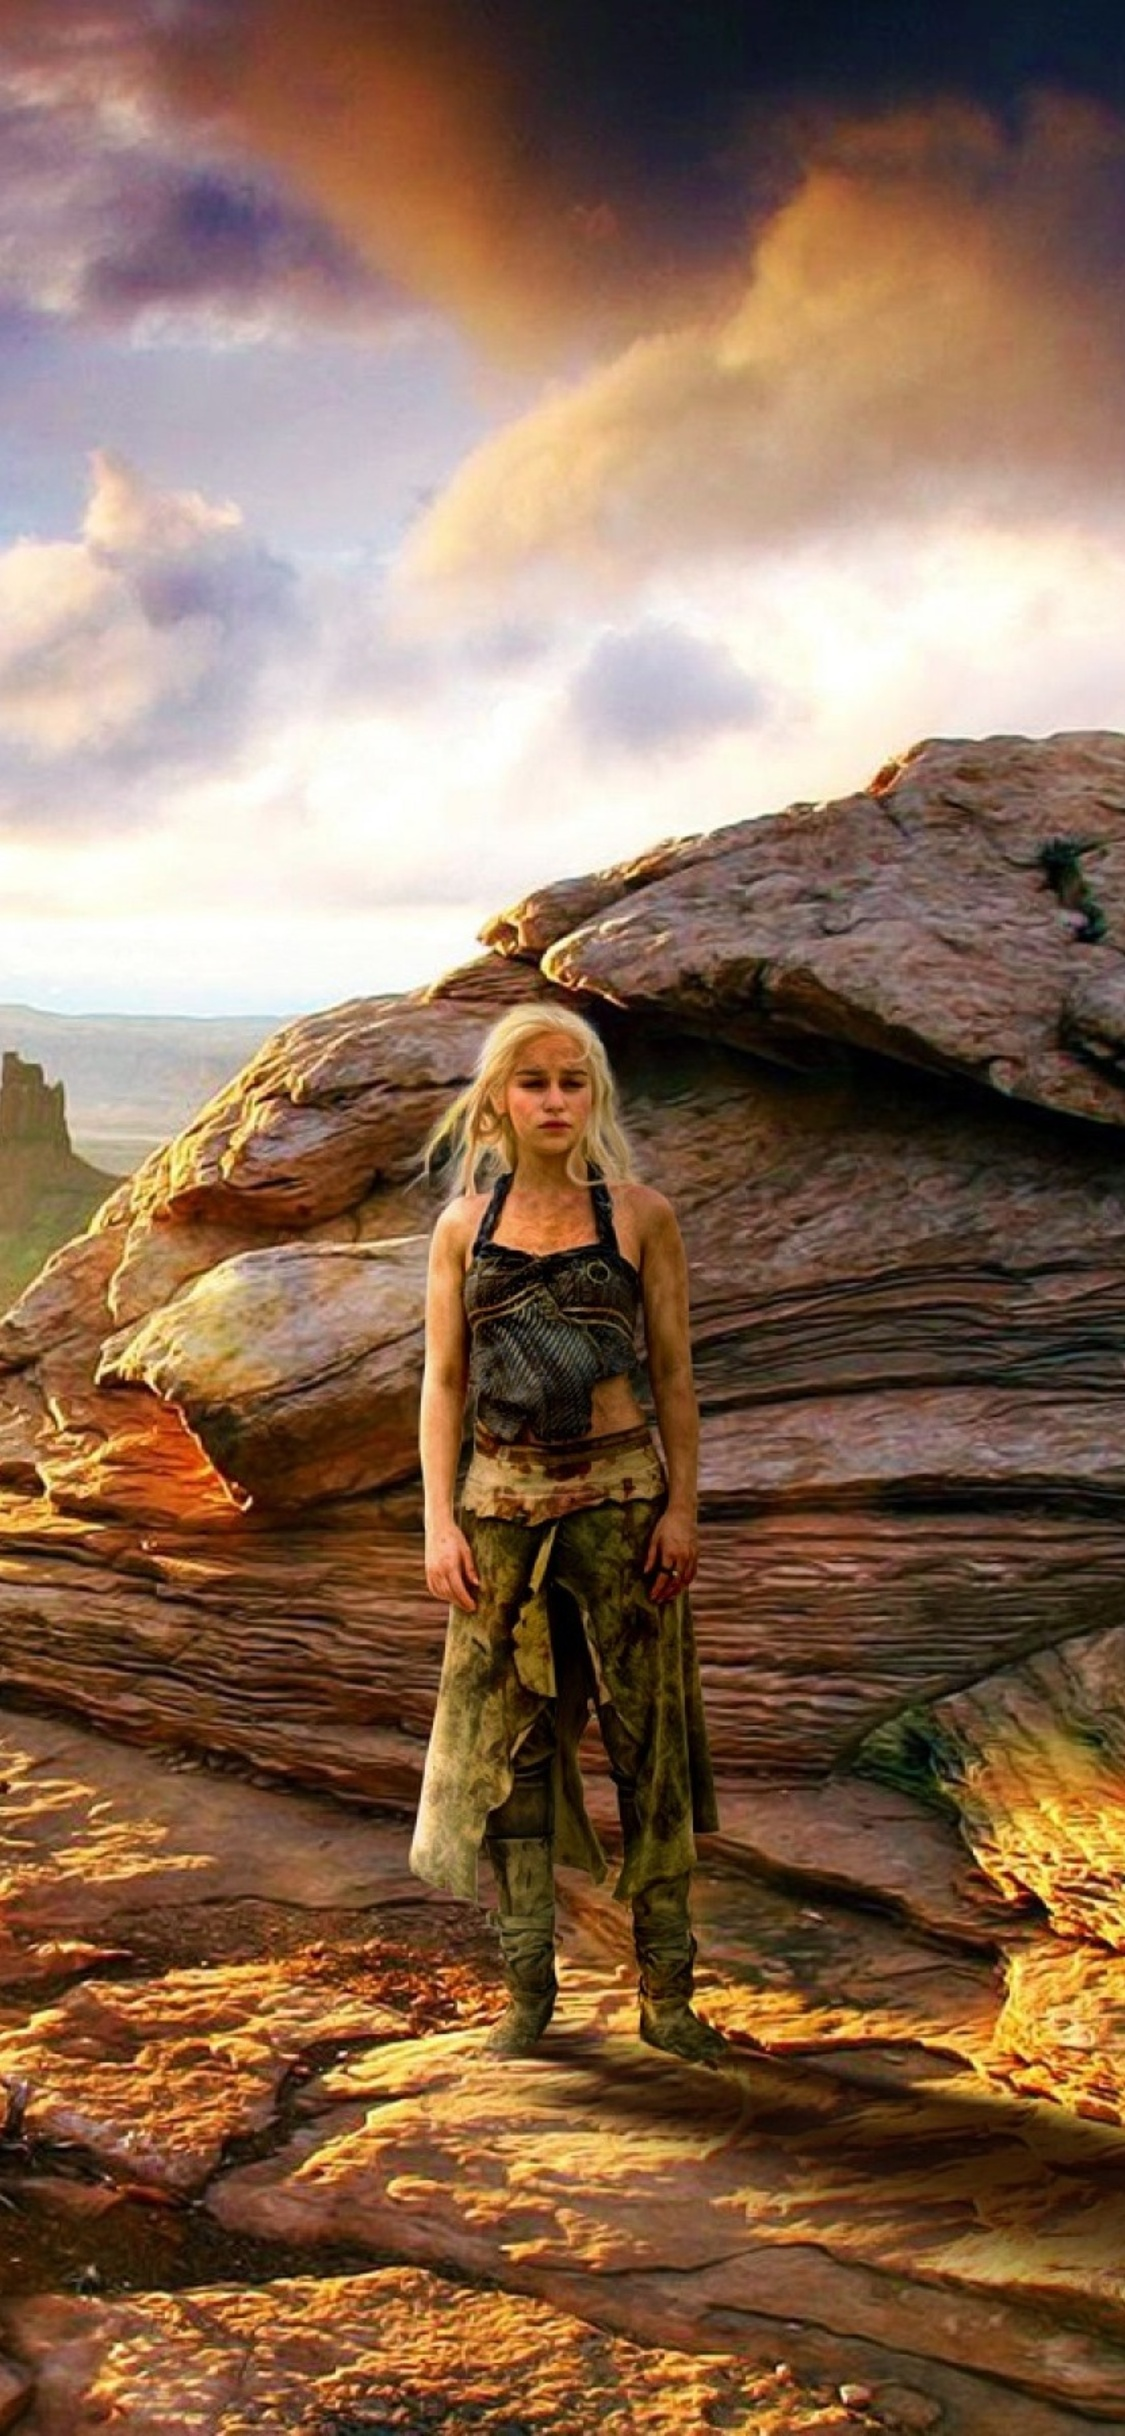 khaleesi-with-dragon-game-of-thrones-qc.jpg